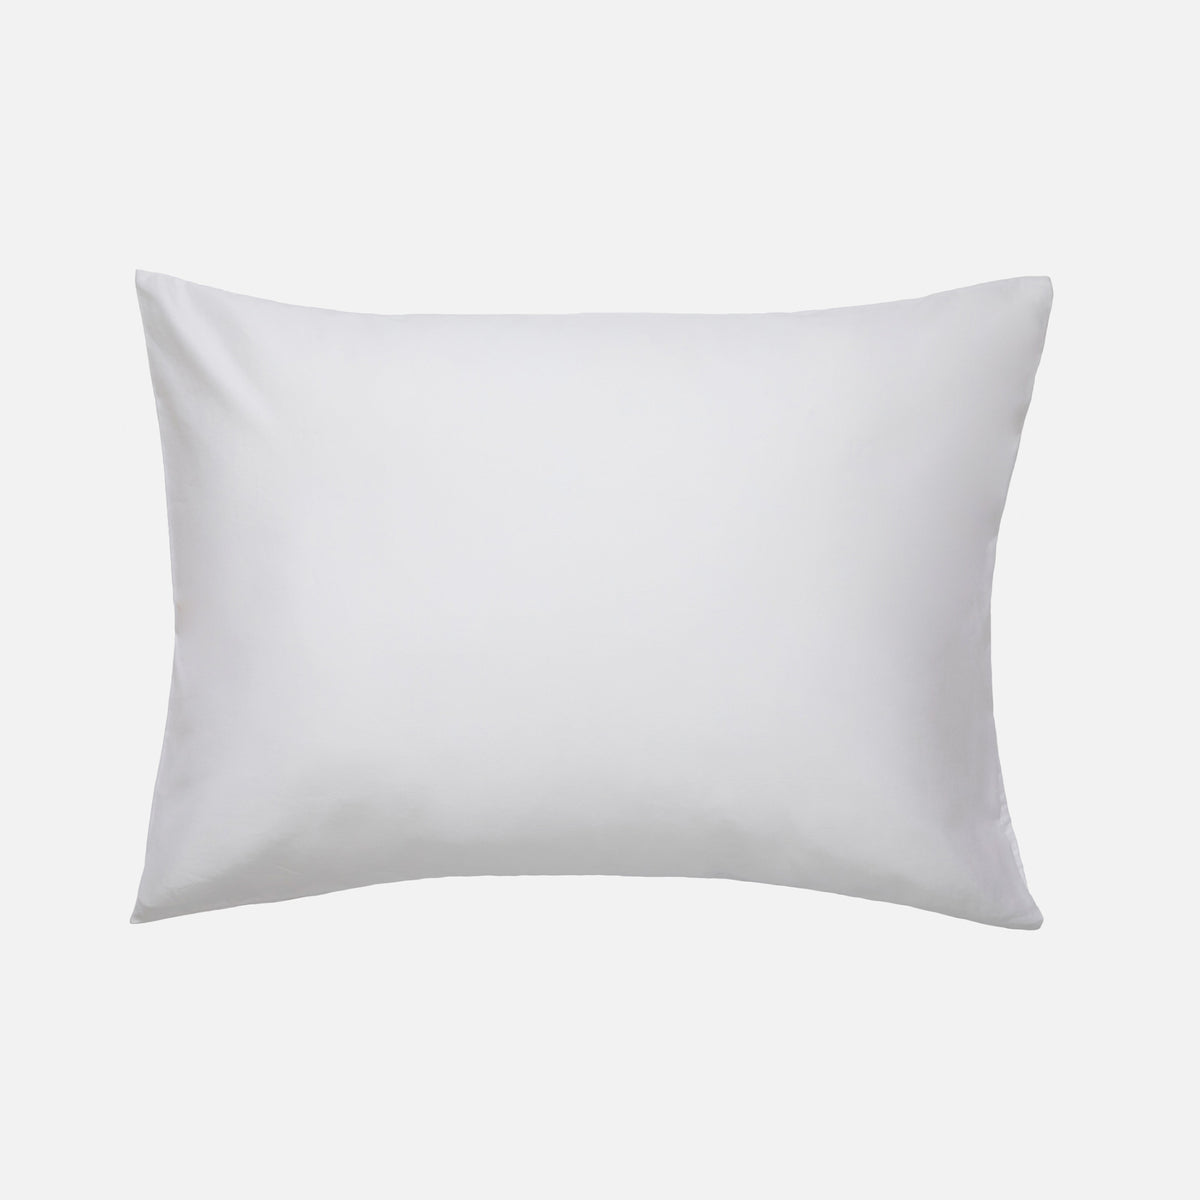 Luxe Pillowcases / Solid White